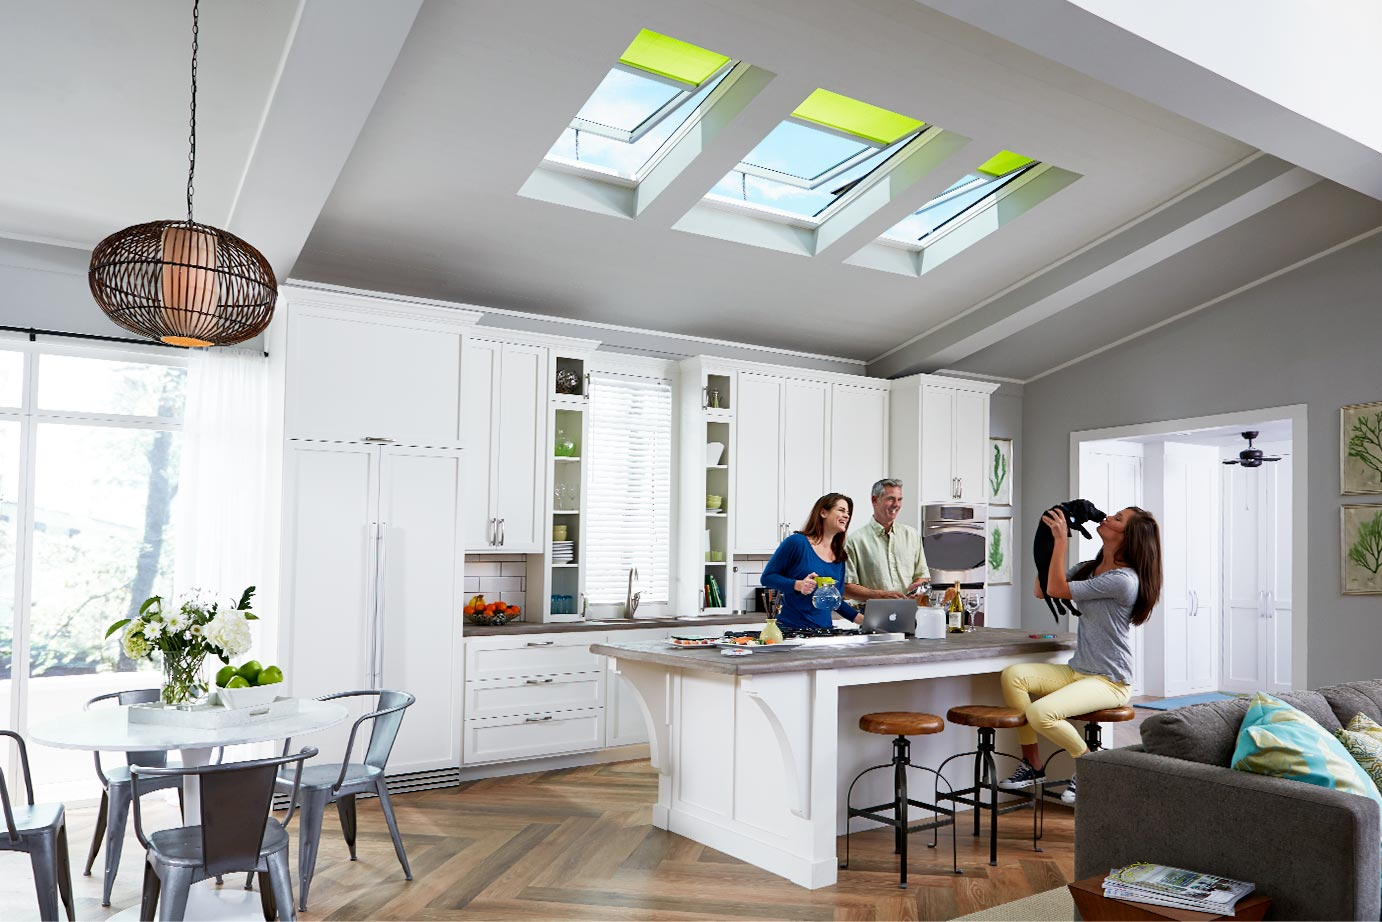 kitchen green blinds?h=922&la=en&w=1382&cc=grid_12&key=145917965341898&sw=960 velux frequently asked questions velux klf 100 wiring diagram at edmiracle.co